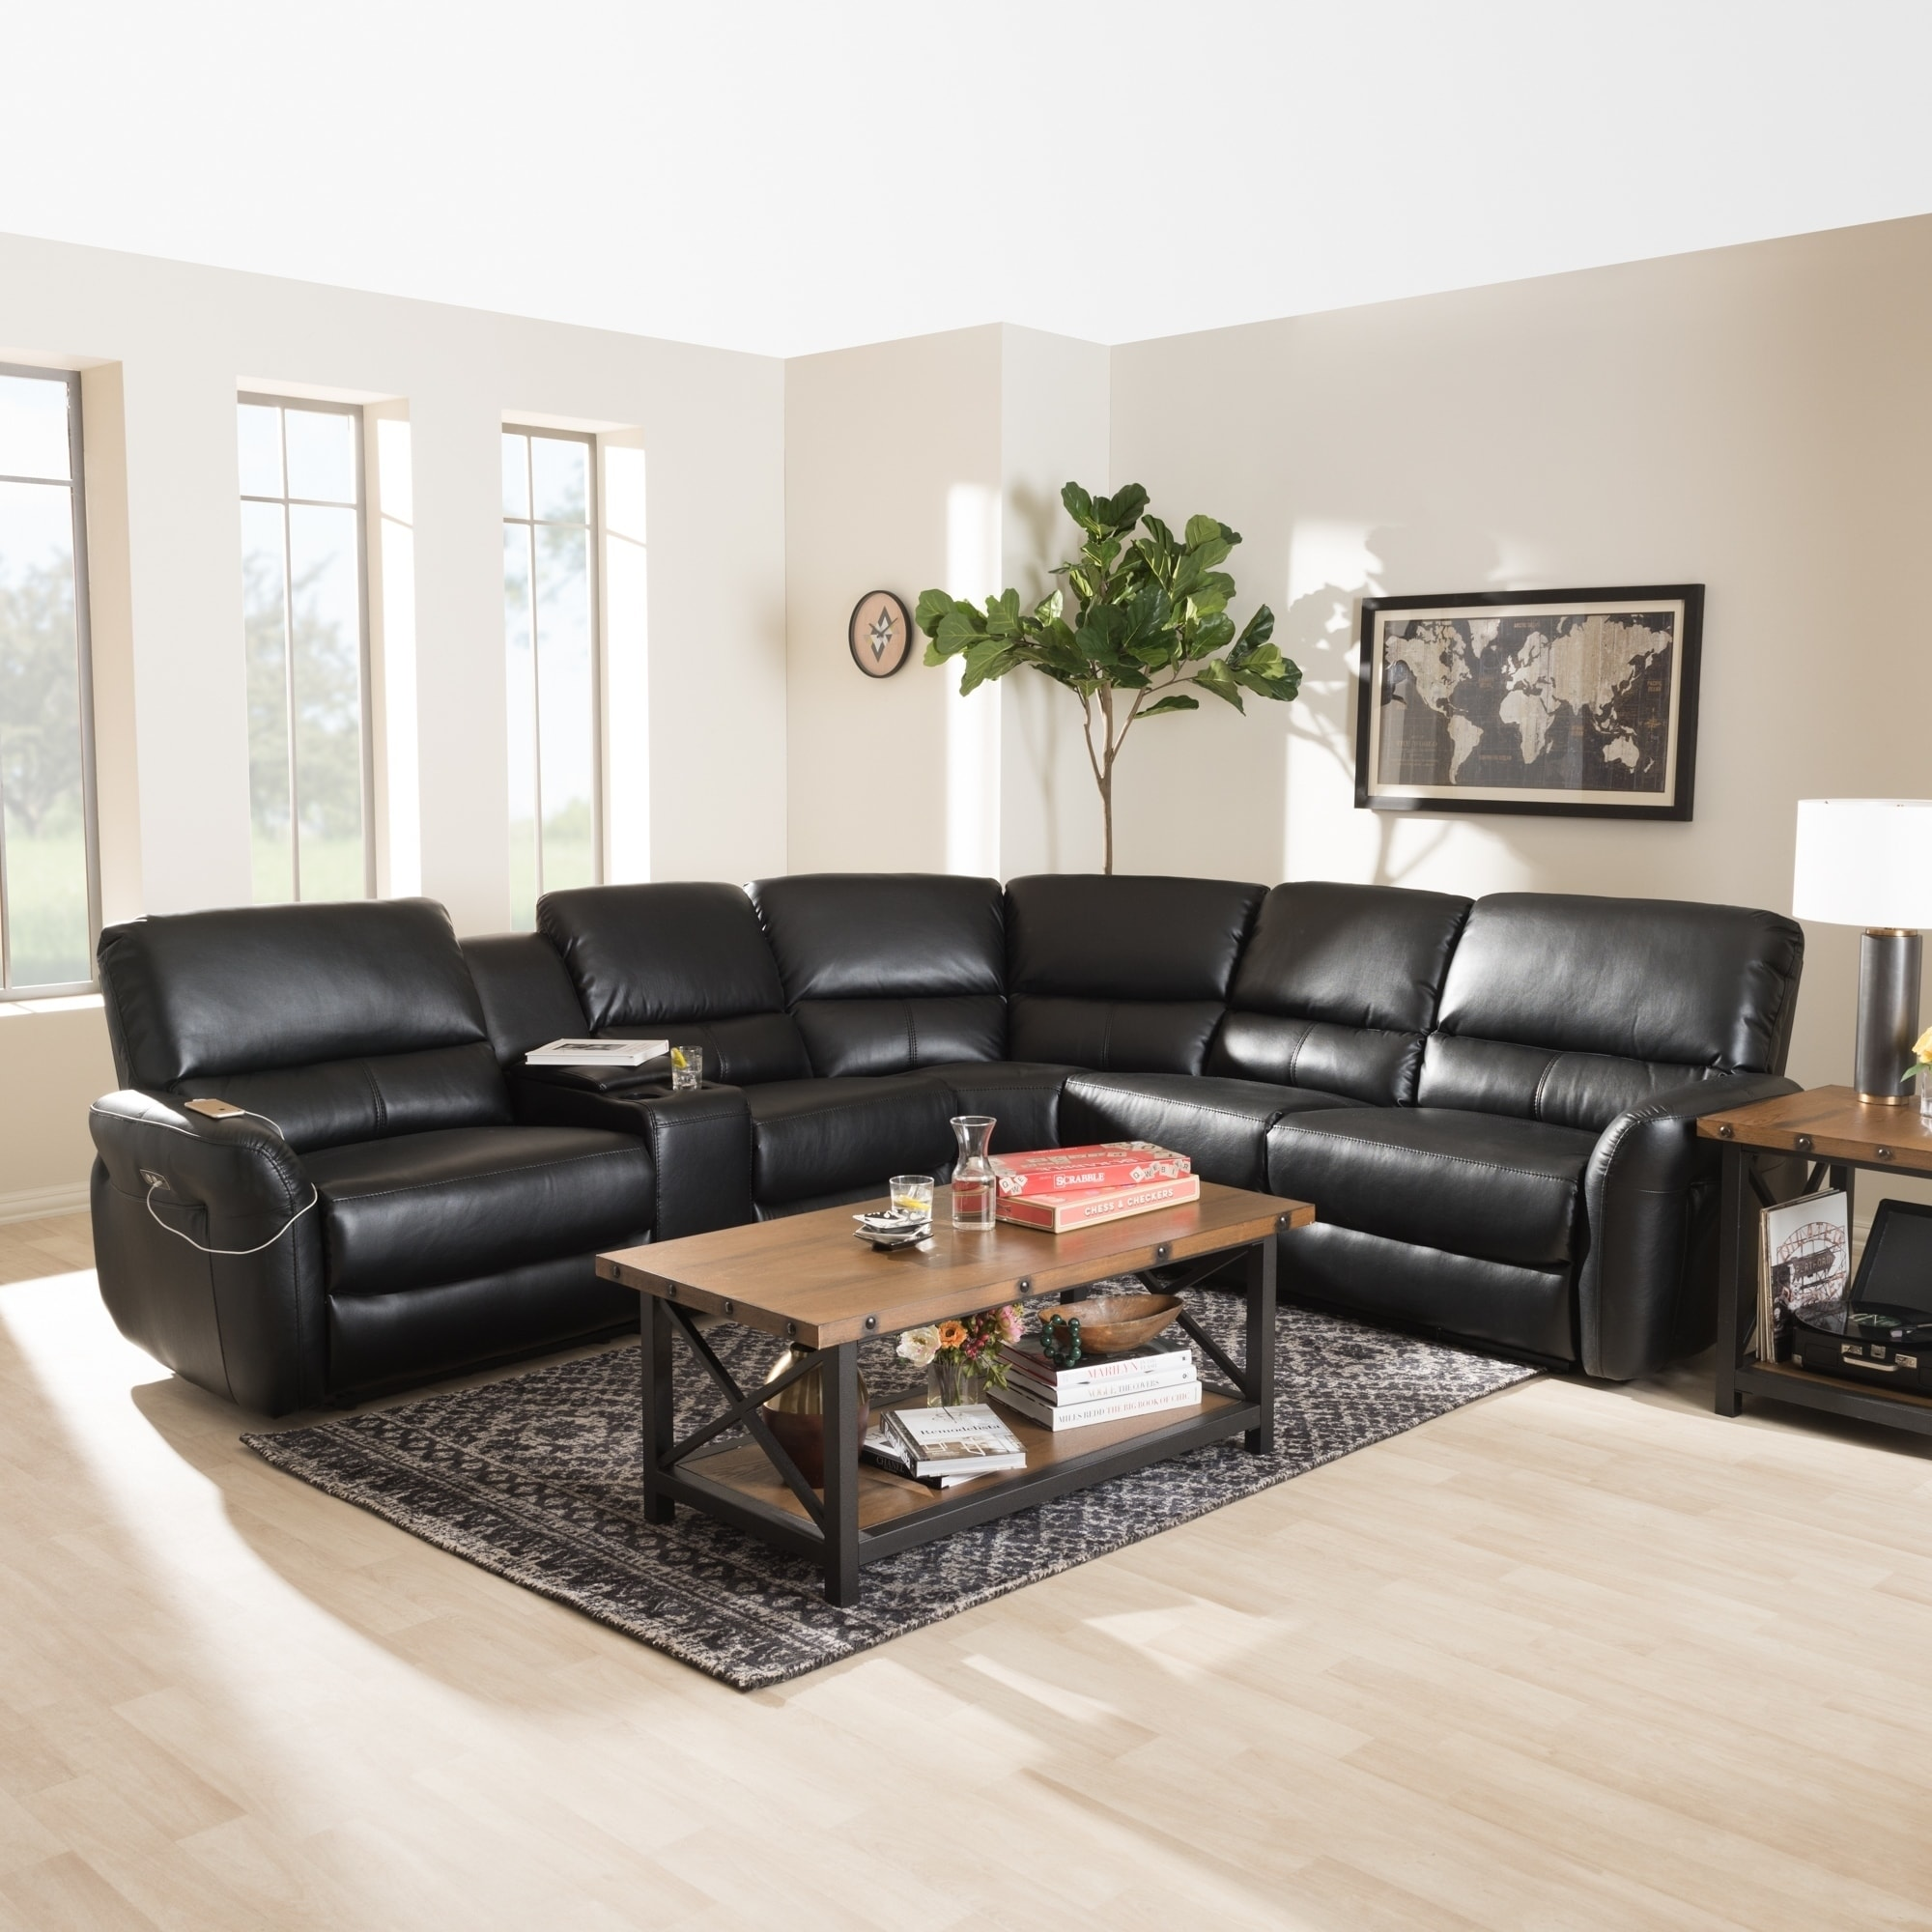 Buy Leather, Curved Sectional Sofas Online at Overstock   Our Best ...